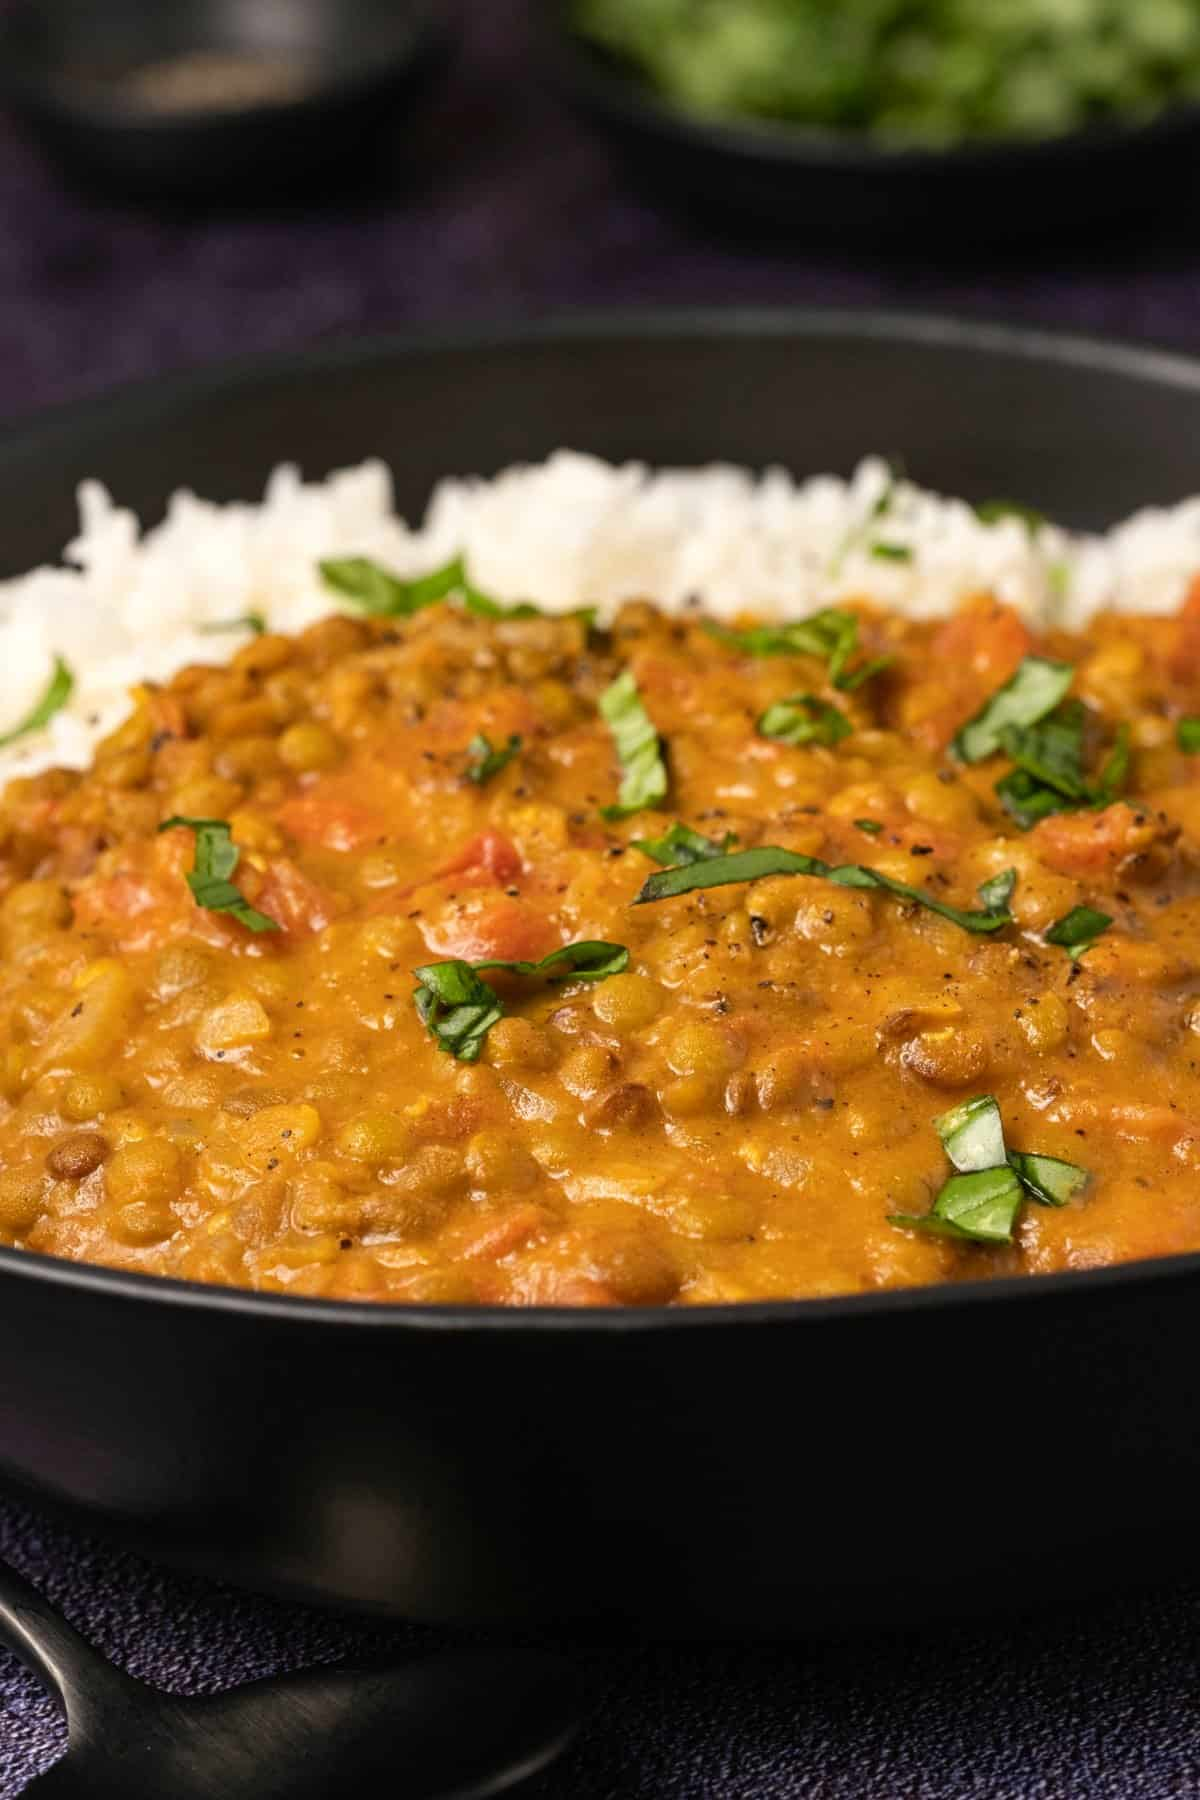 Lentil curry with rice and chopped basil in a black bowl.